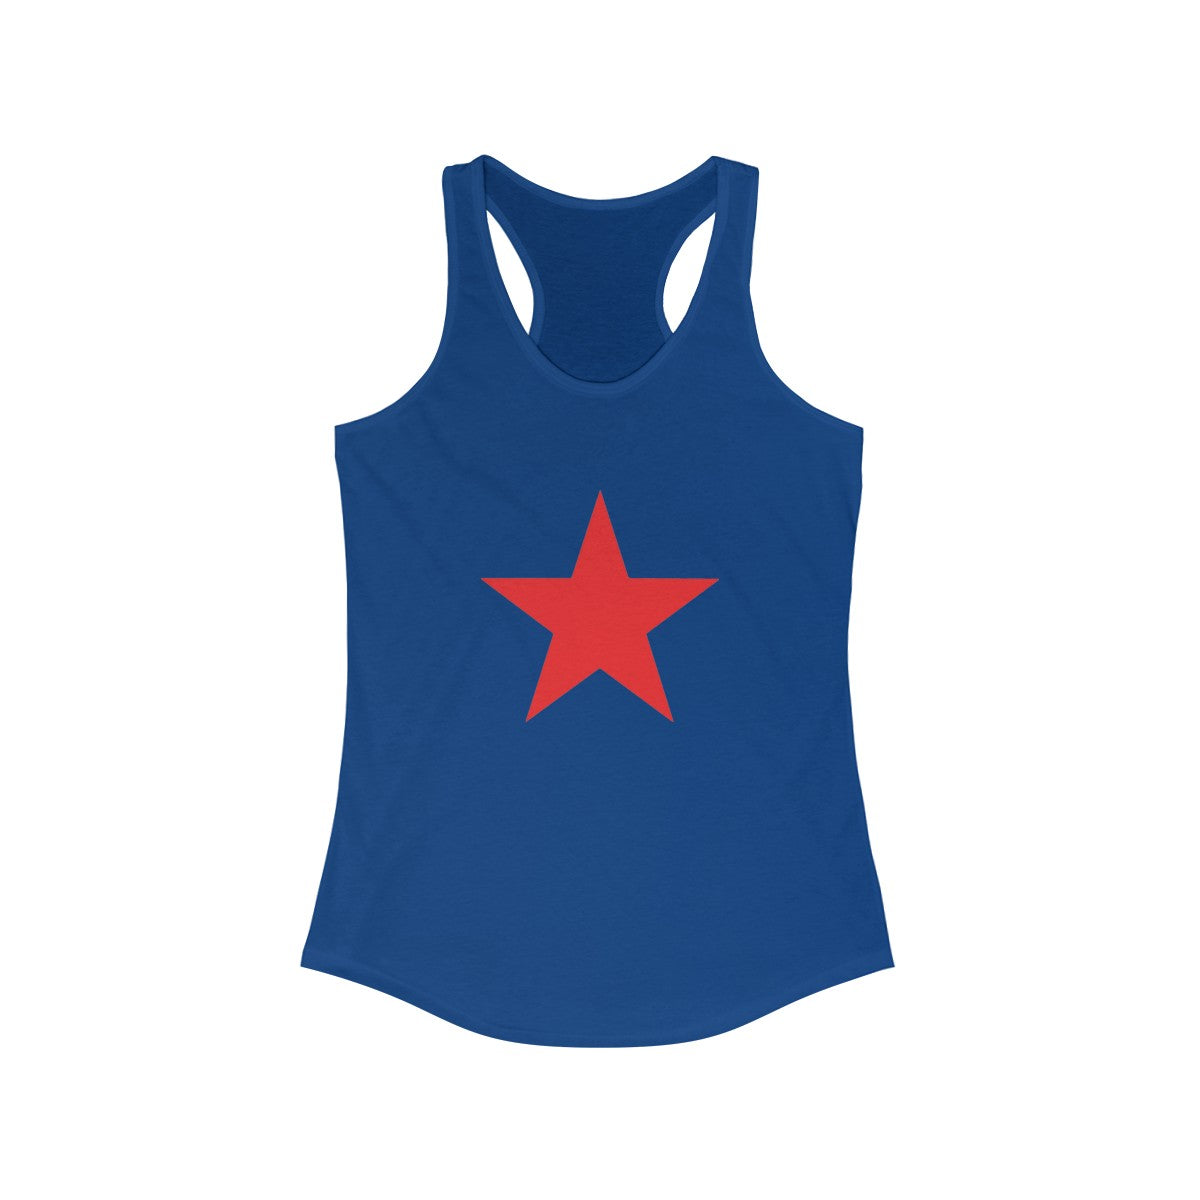 Women's Red Star Racer-back Tank - Fuckinuts